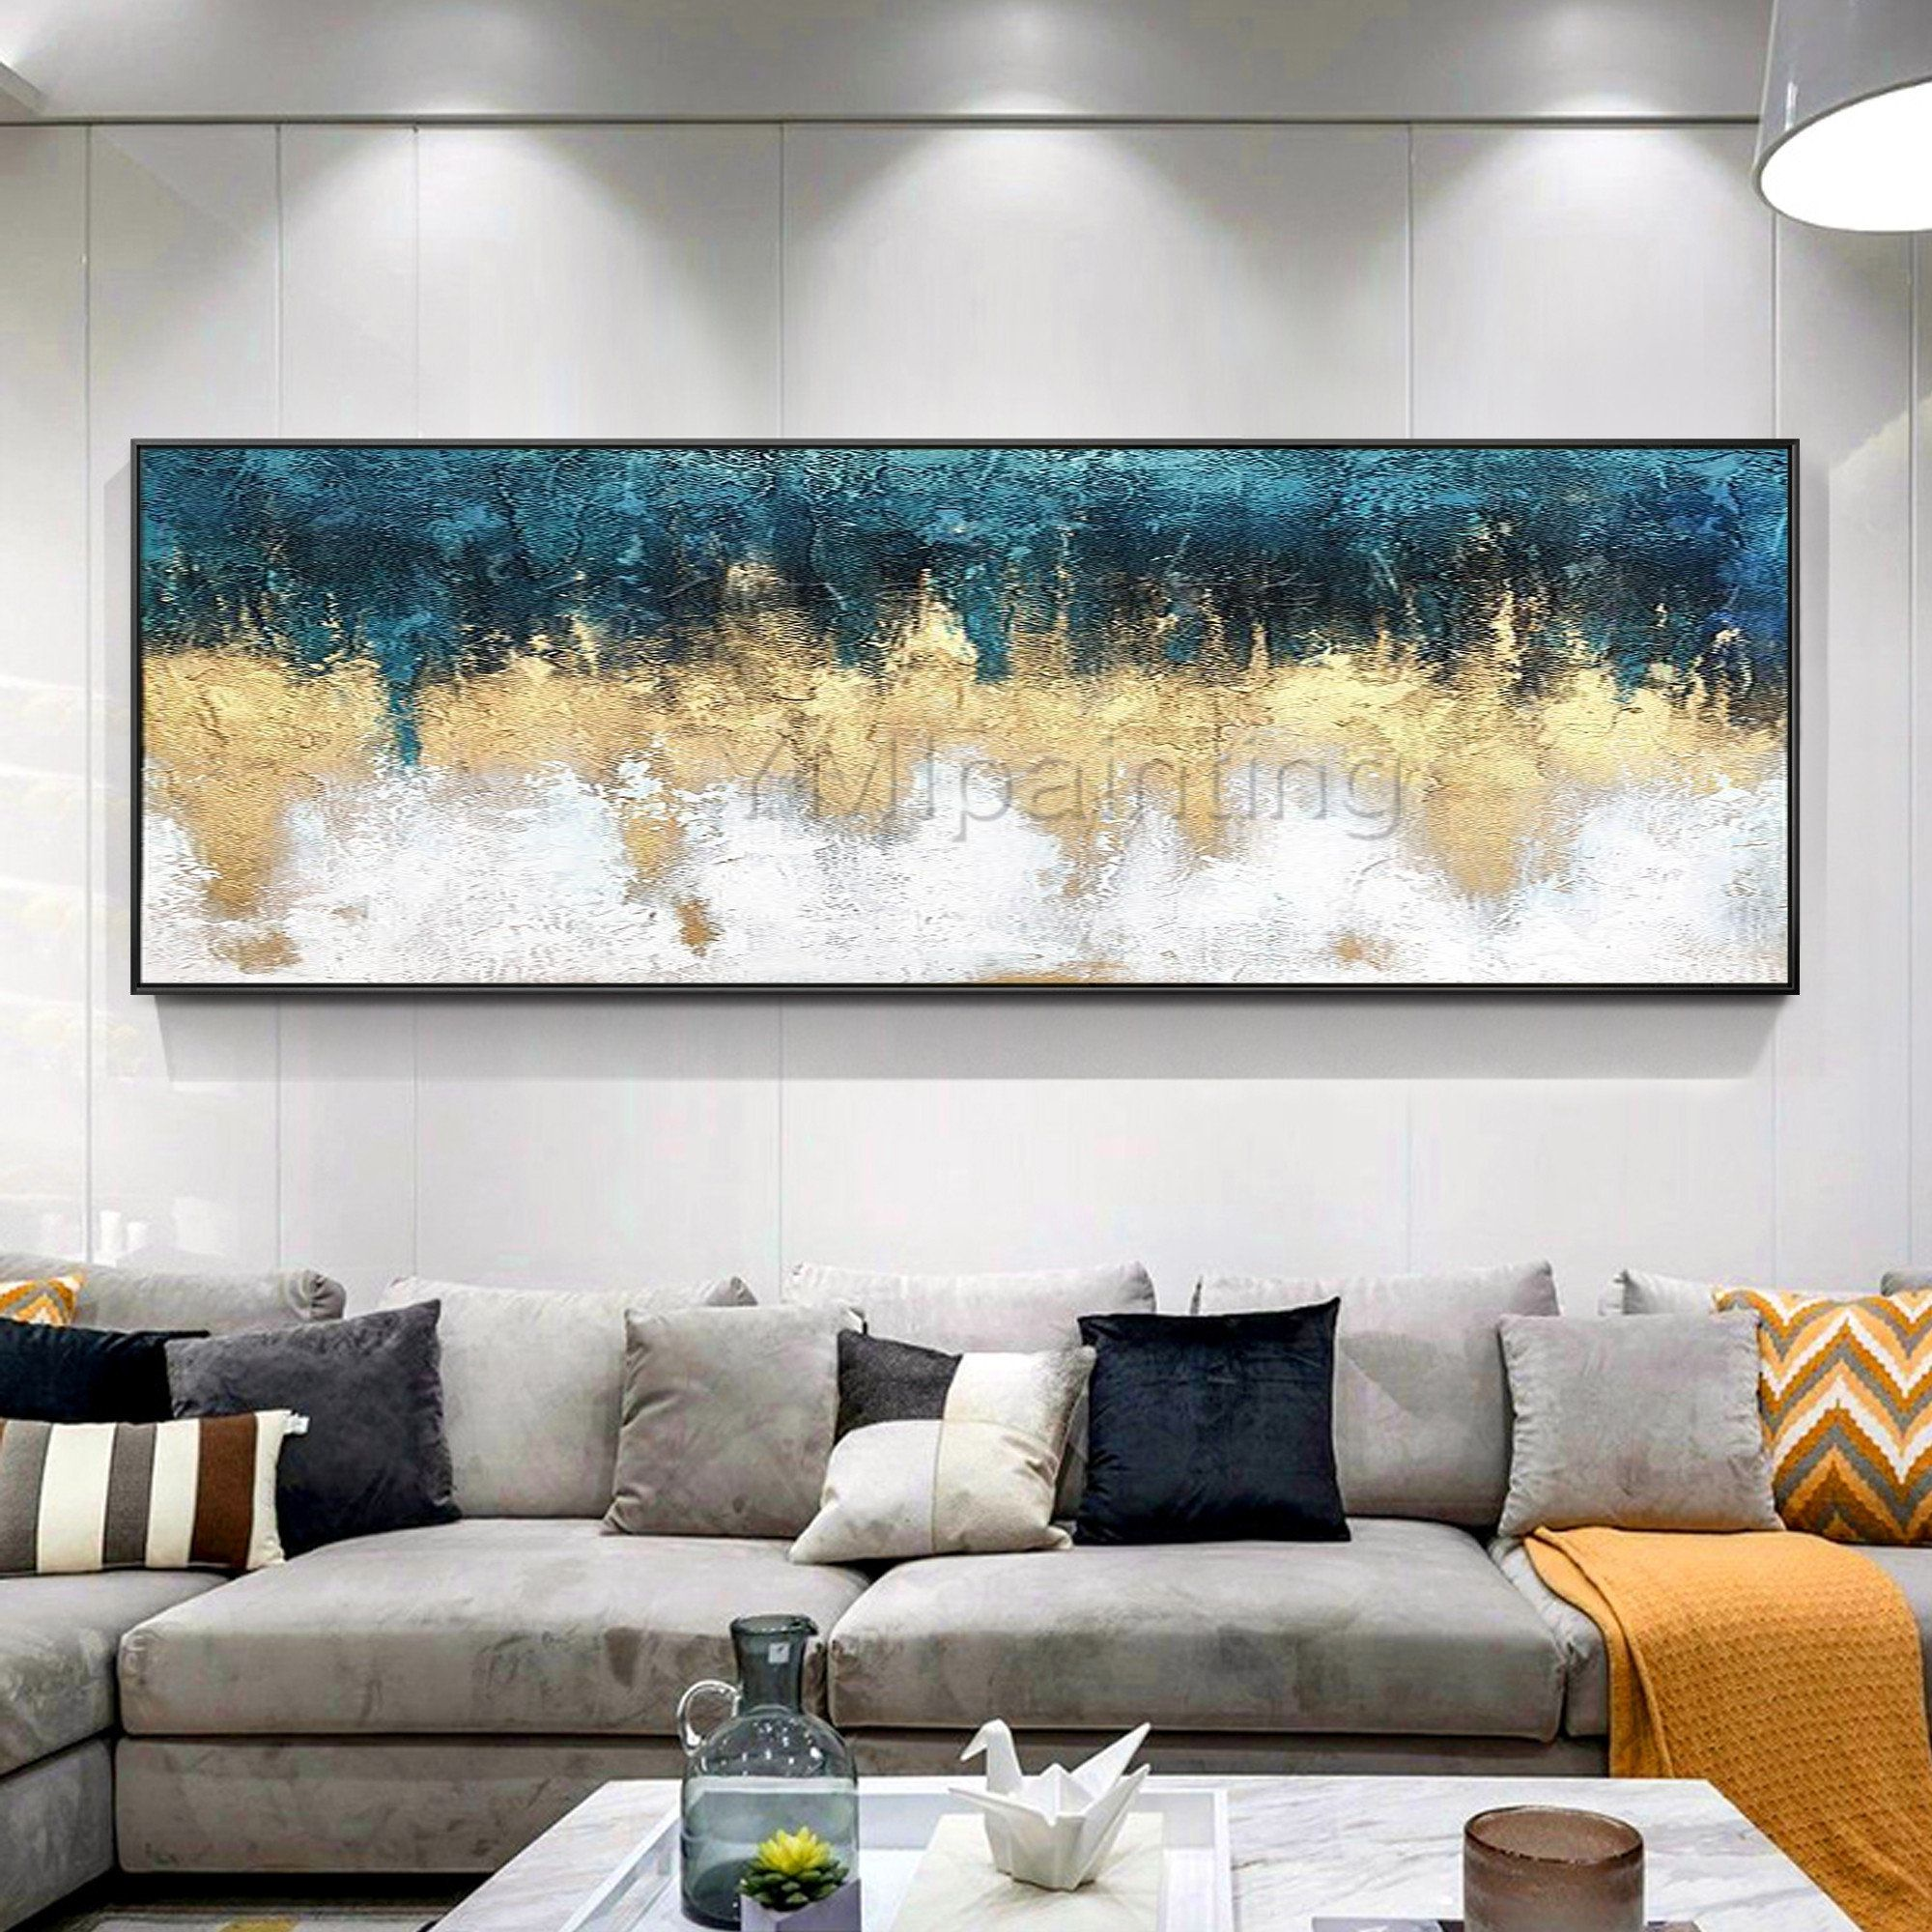 Framed Wall Art Acrylic Abstract Gold Blue Original Paintings Etsy In 2021 Horizontal Wall Art Horizontal Painting Extra Large Wall Art